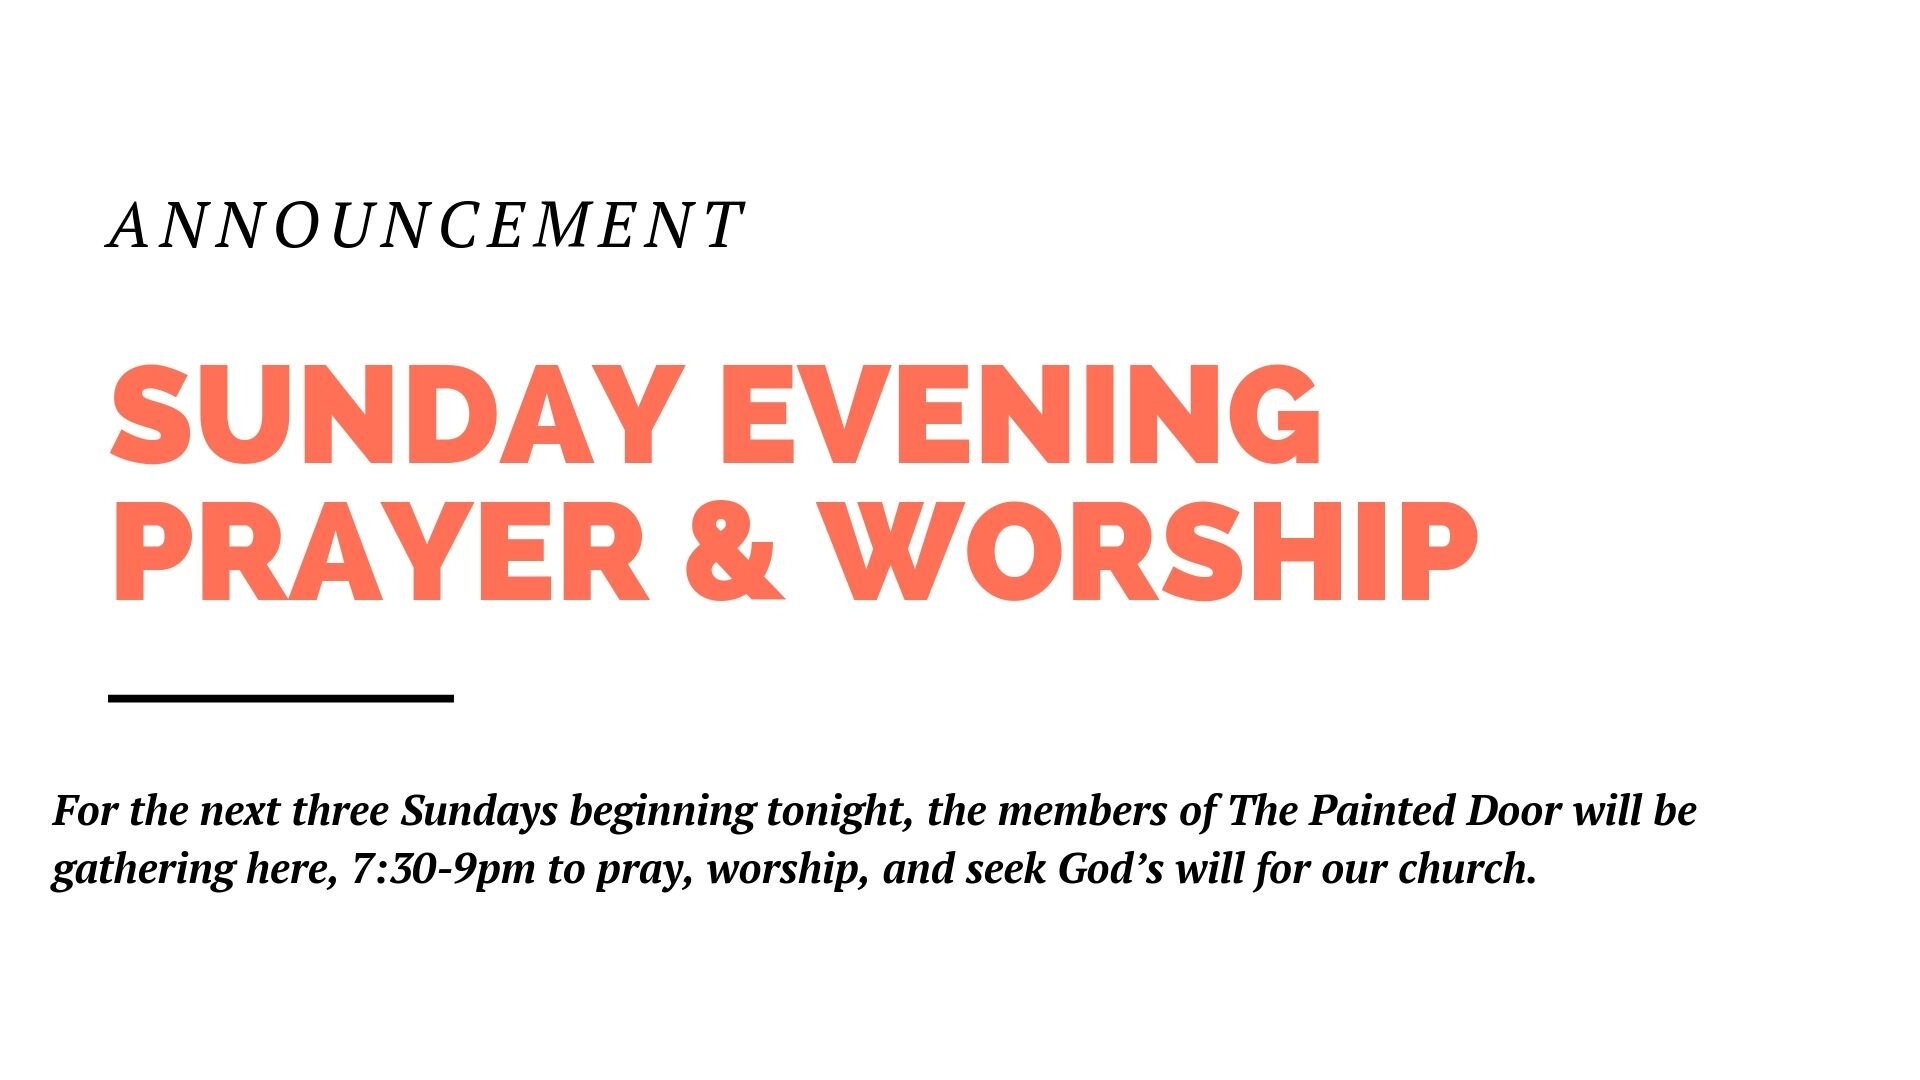 Tomorrow, the members of The Painted Door will be gathering at the church, 7:30-9pm to pray, worship, and seek God's will for our church. Please make every effort to join us.